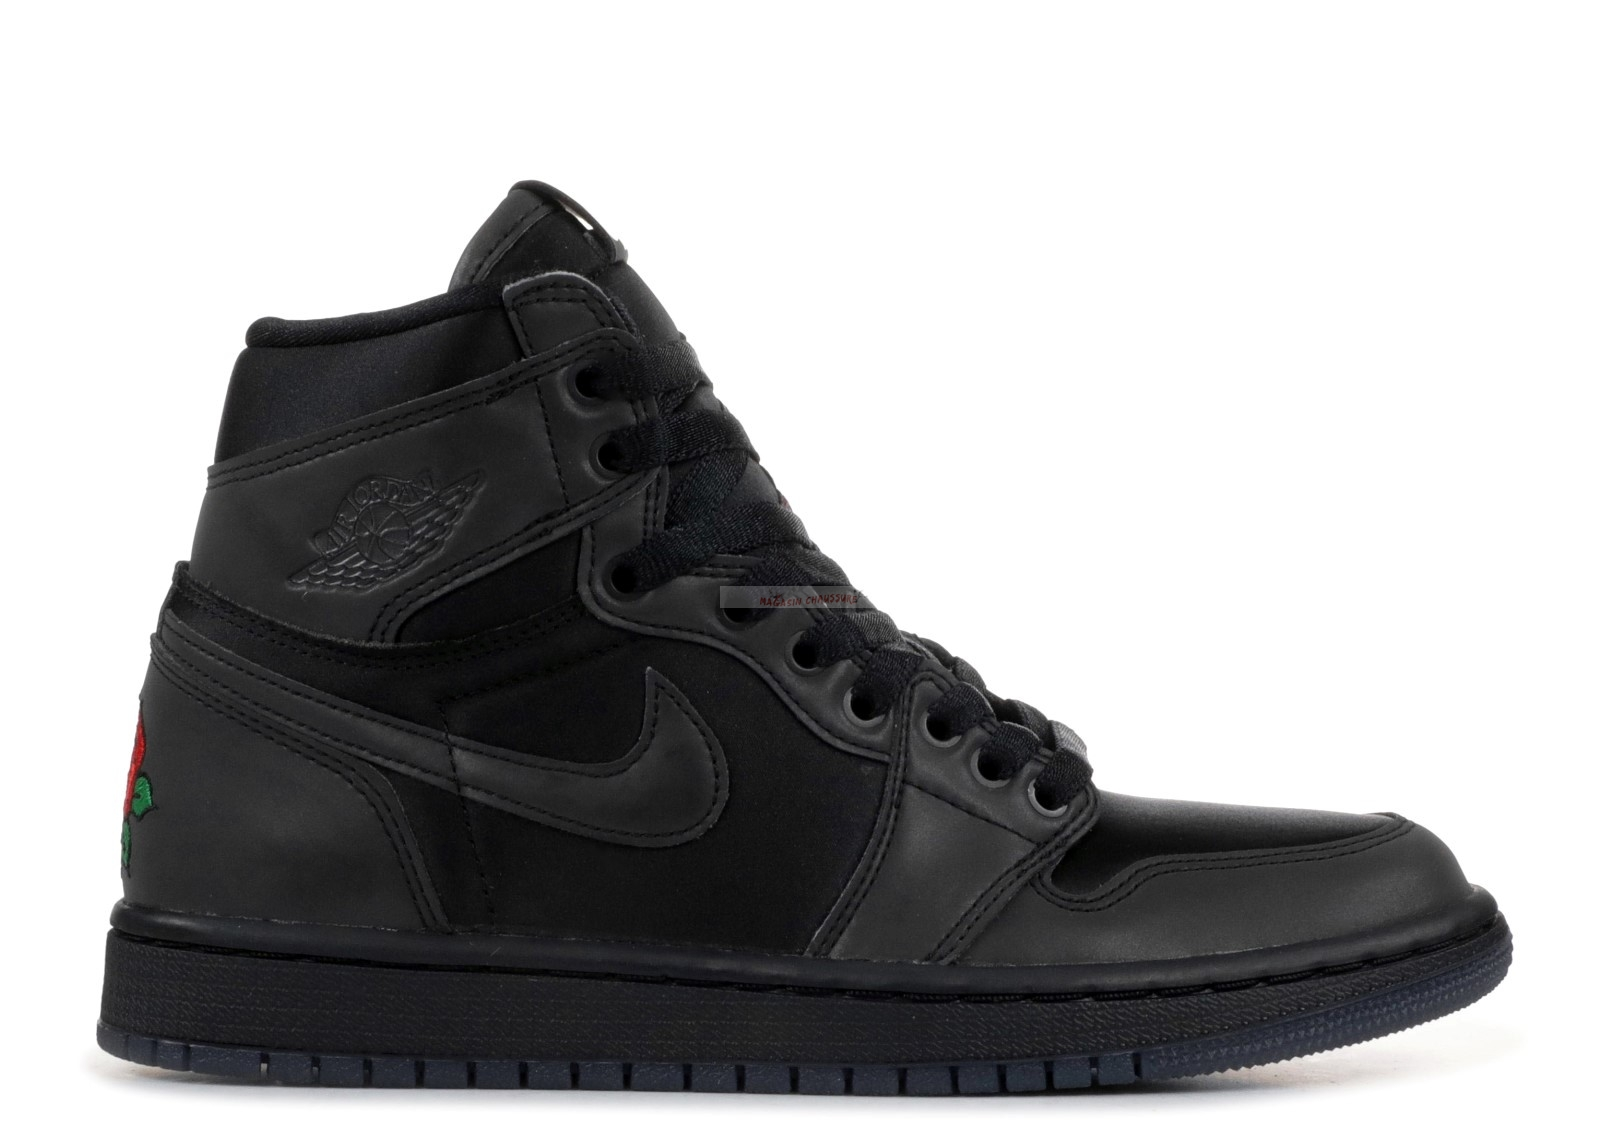 "Air Jordan 1 - Femme Retro High ""Rox Brown"" Noir (bv1576-001) Chaussure de Basket"